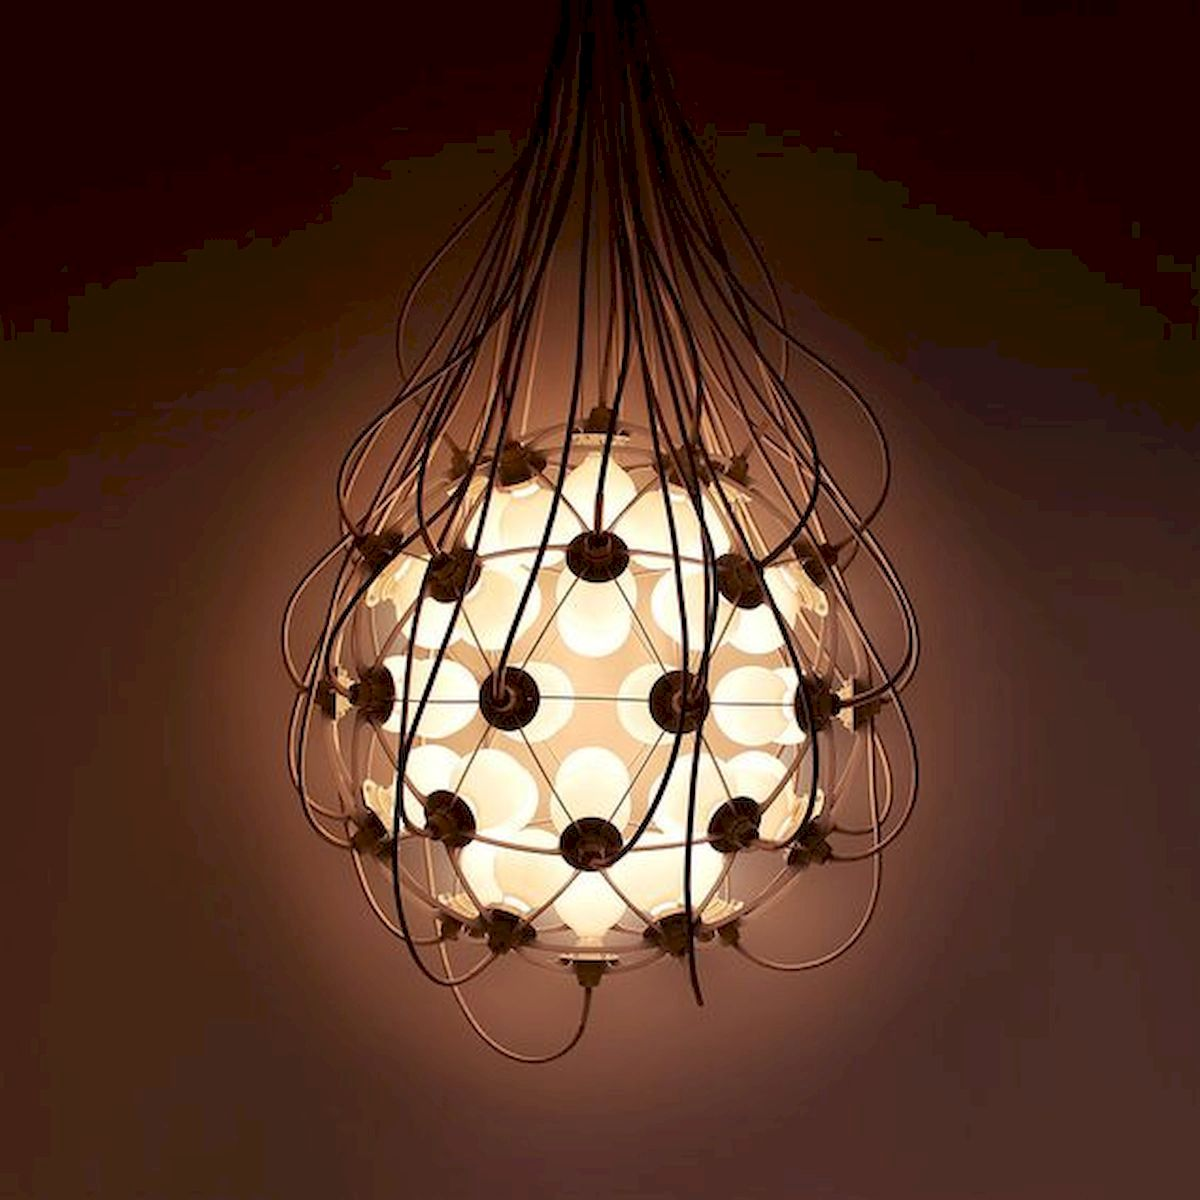 40 Creative DIY Lamps Decoration Ideas for Your Home (11)